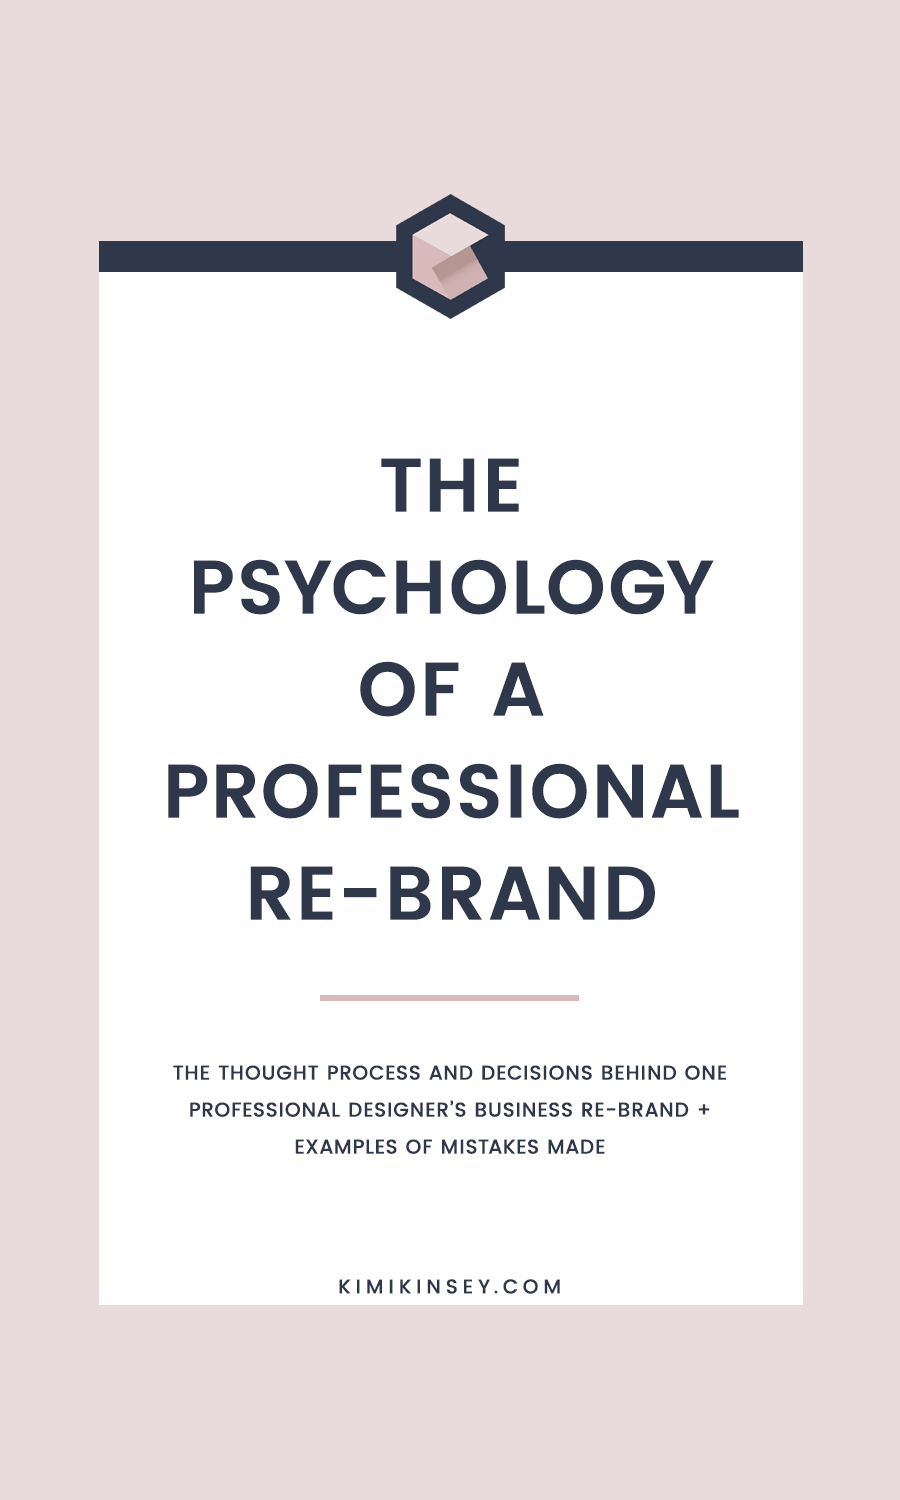 The psychology of a professional rebrand